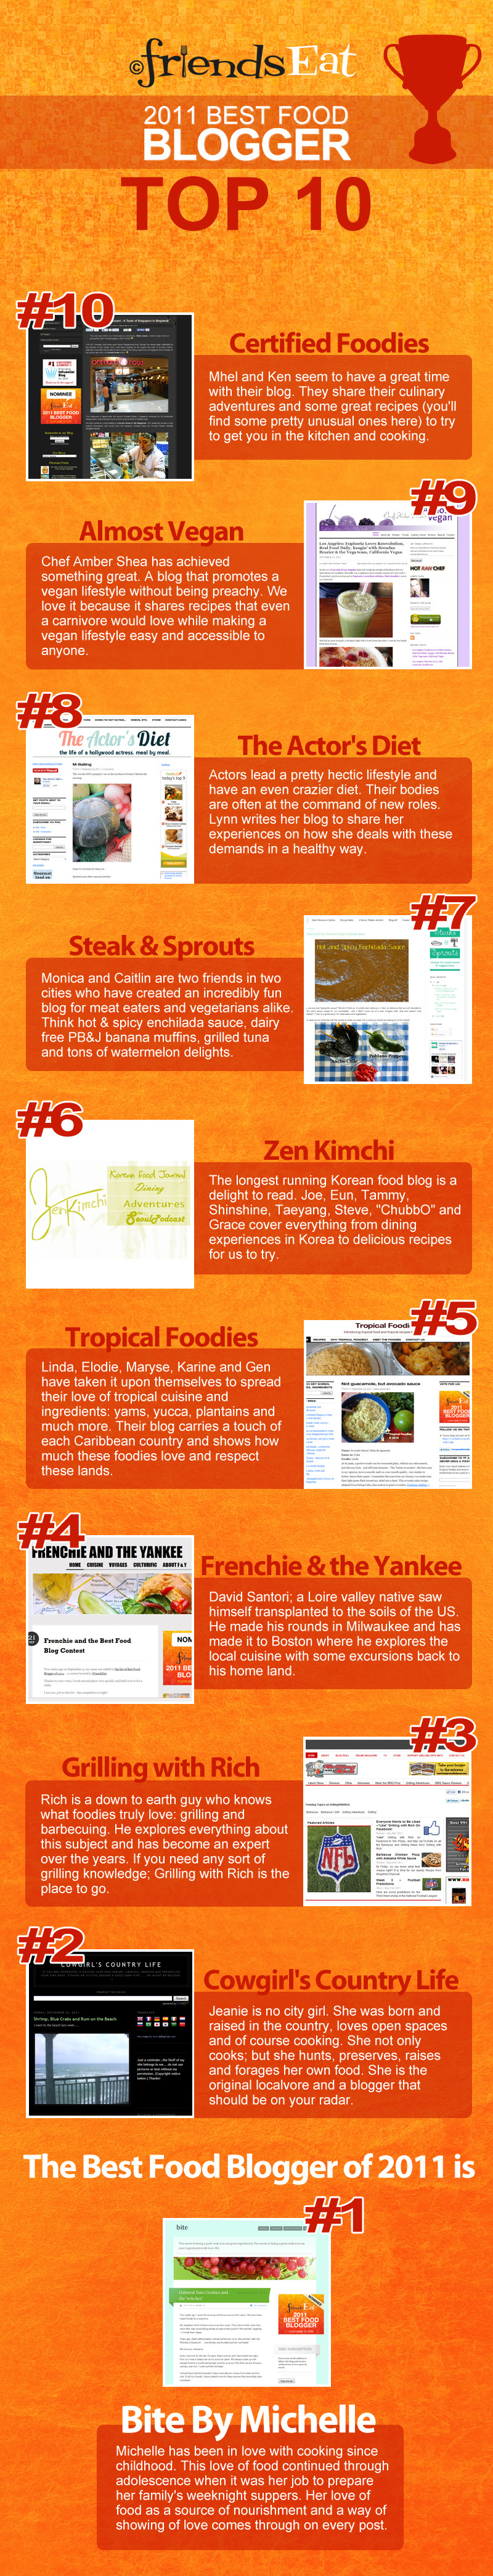 top 10 food bloggers 2011 Best Food Blogger